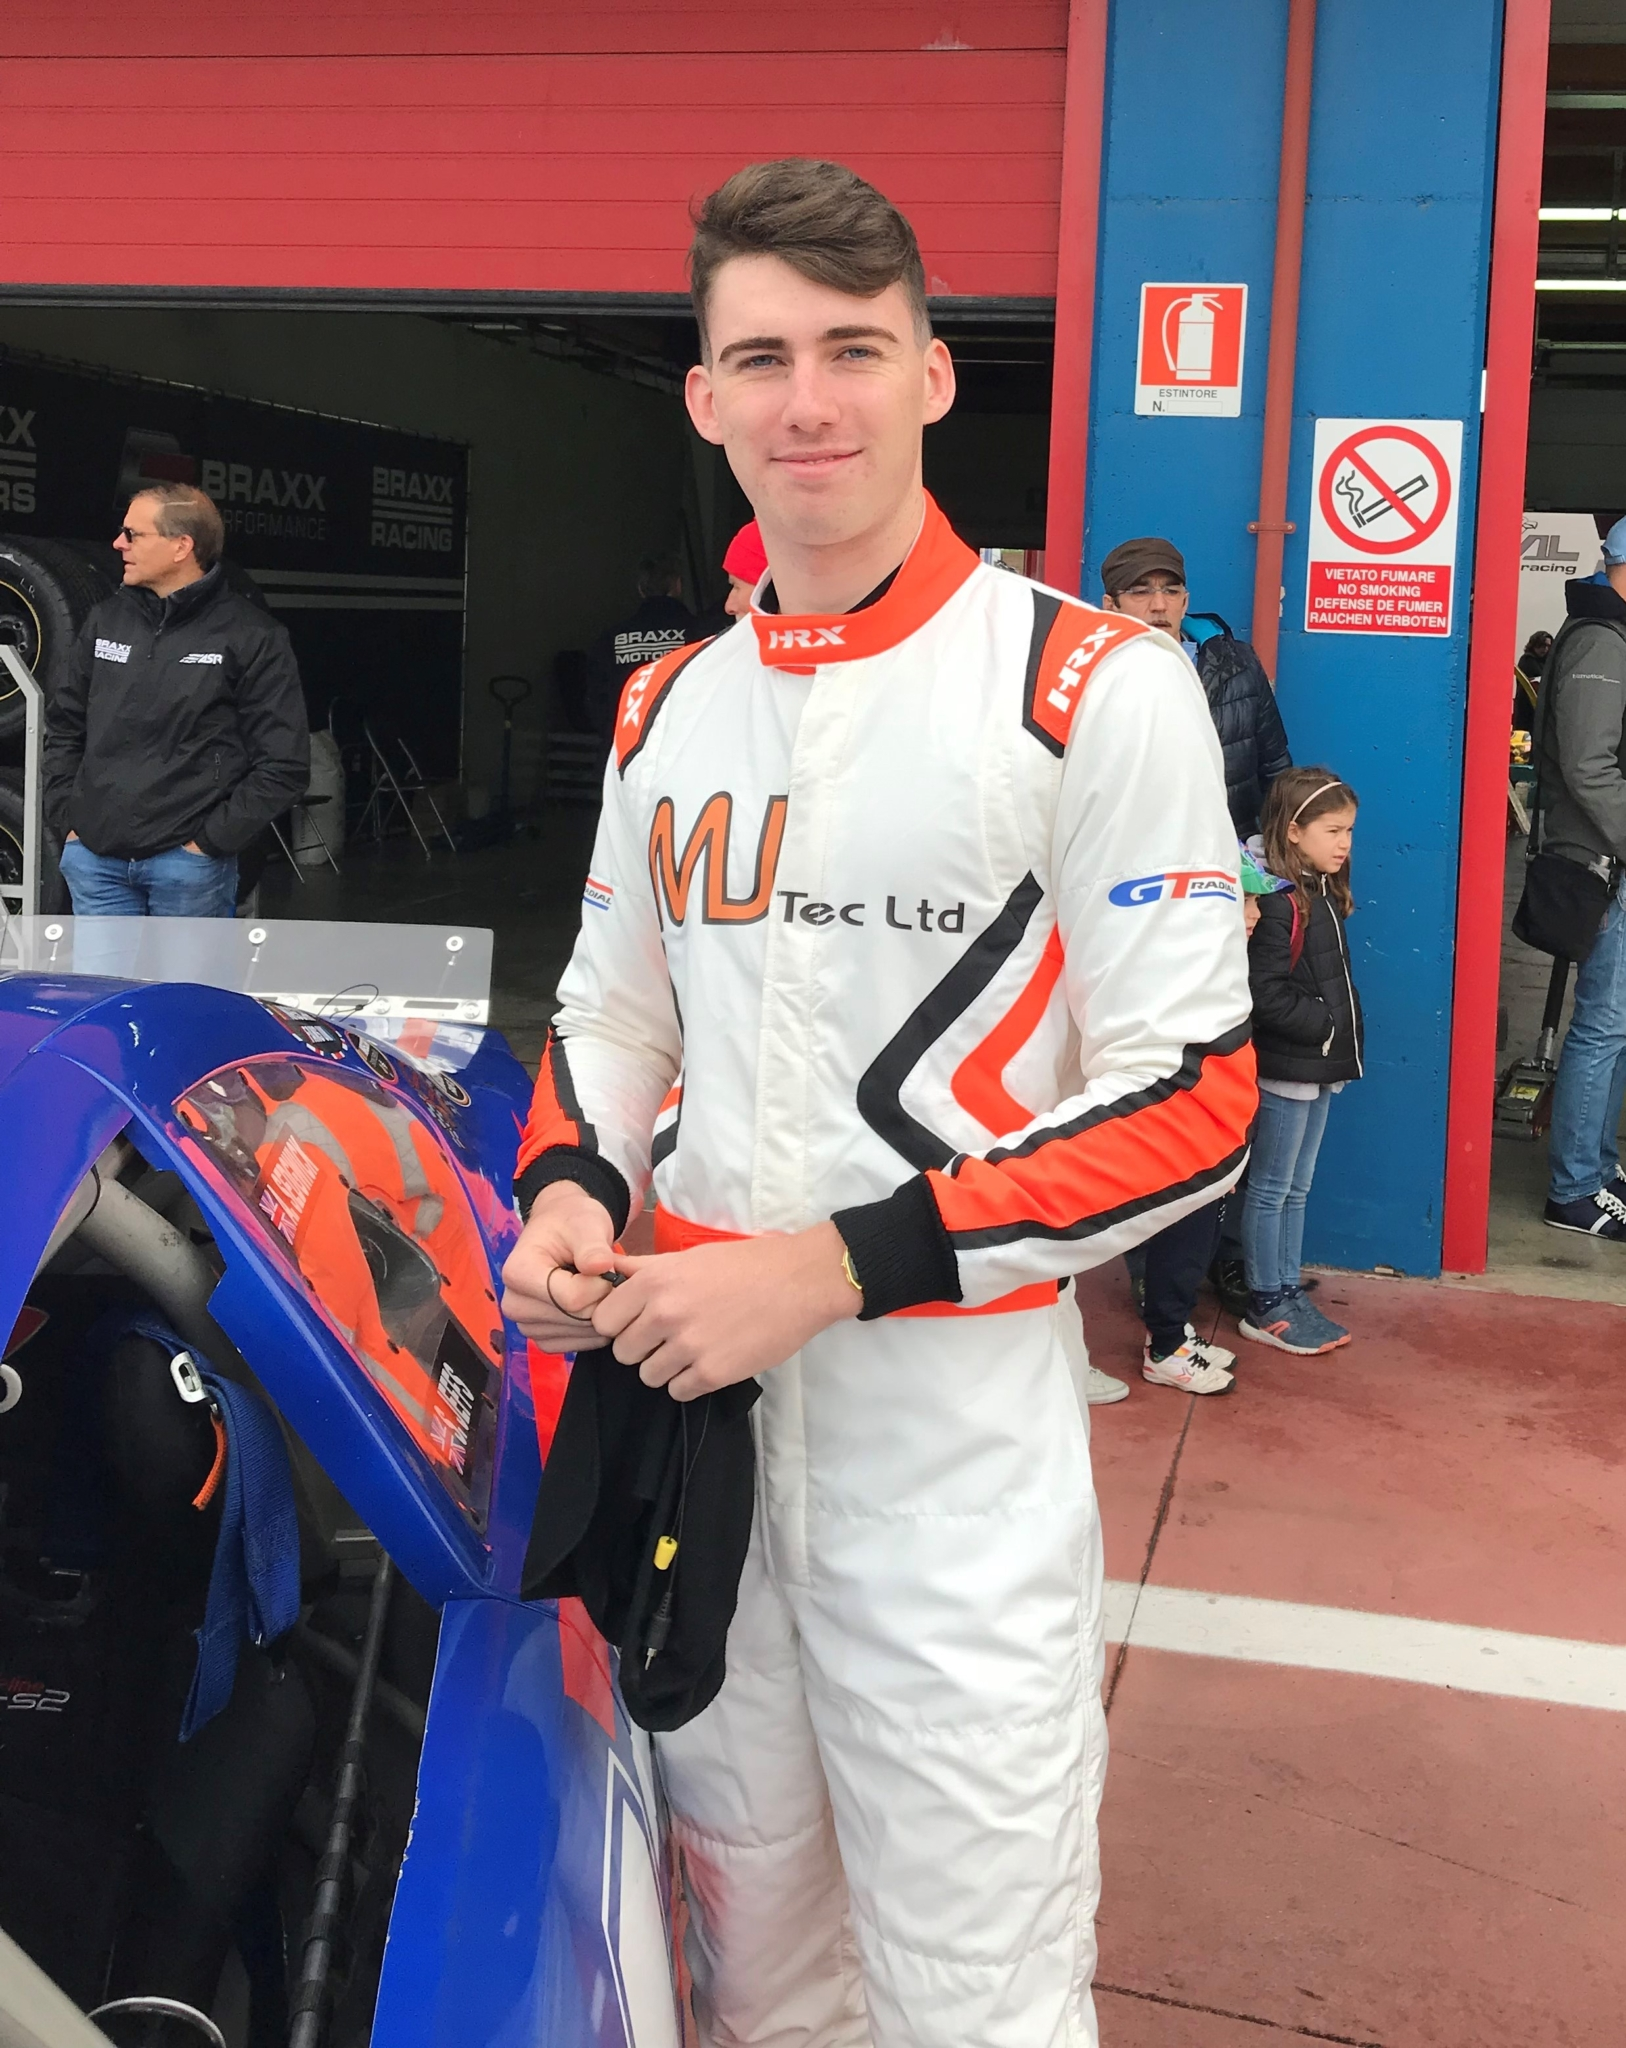 Nascar Euro's Jeffs joins GT Radial for VW Fun Cup at Thruxton